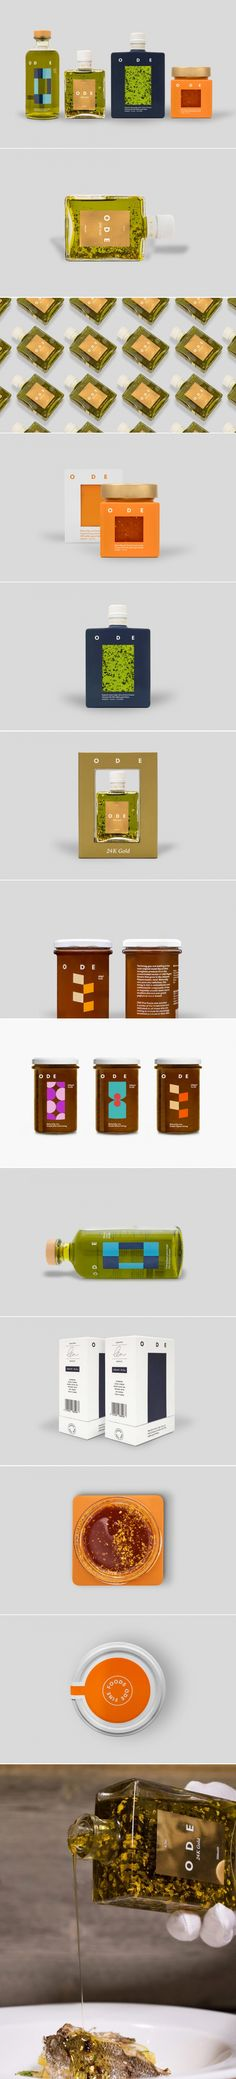 This Range of Condiments is For Those Who Live The Luxe Life — The Dieline | Packaging & Branding Design & Innovation News